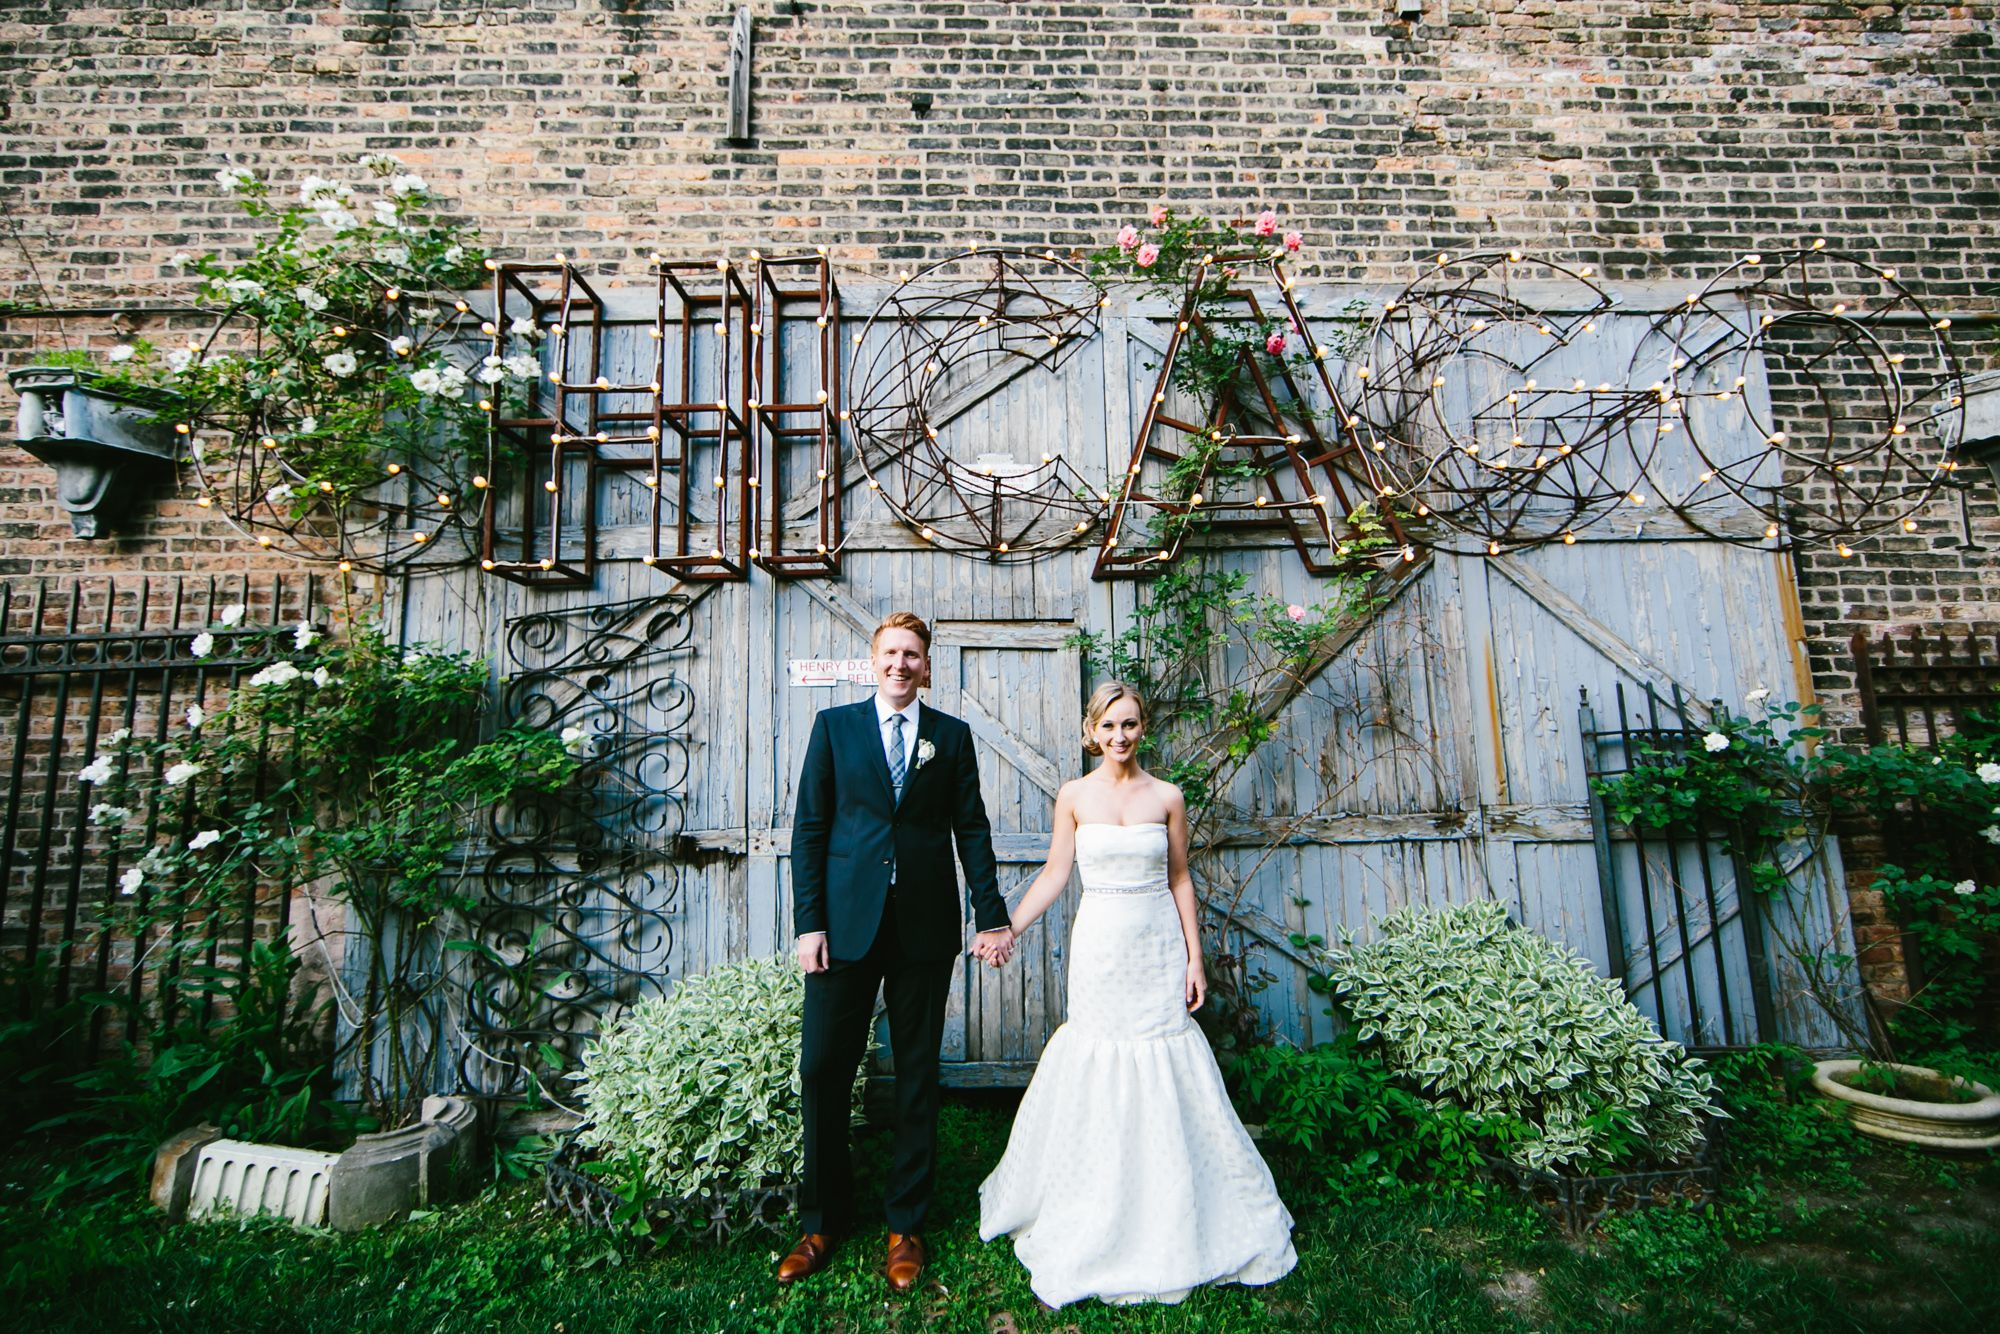 Whimsical   Vintage Chicago Wedding | photography by http://pencarlson.com (via @Elizabeth Anne Designs)